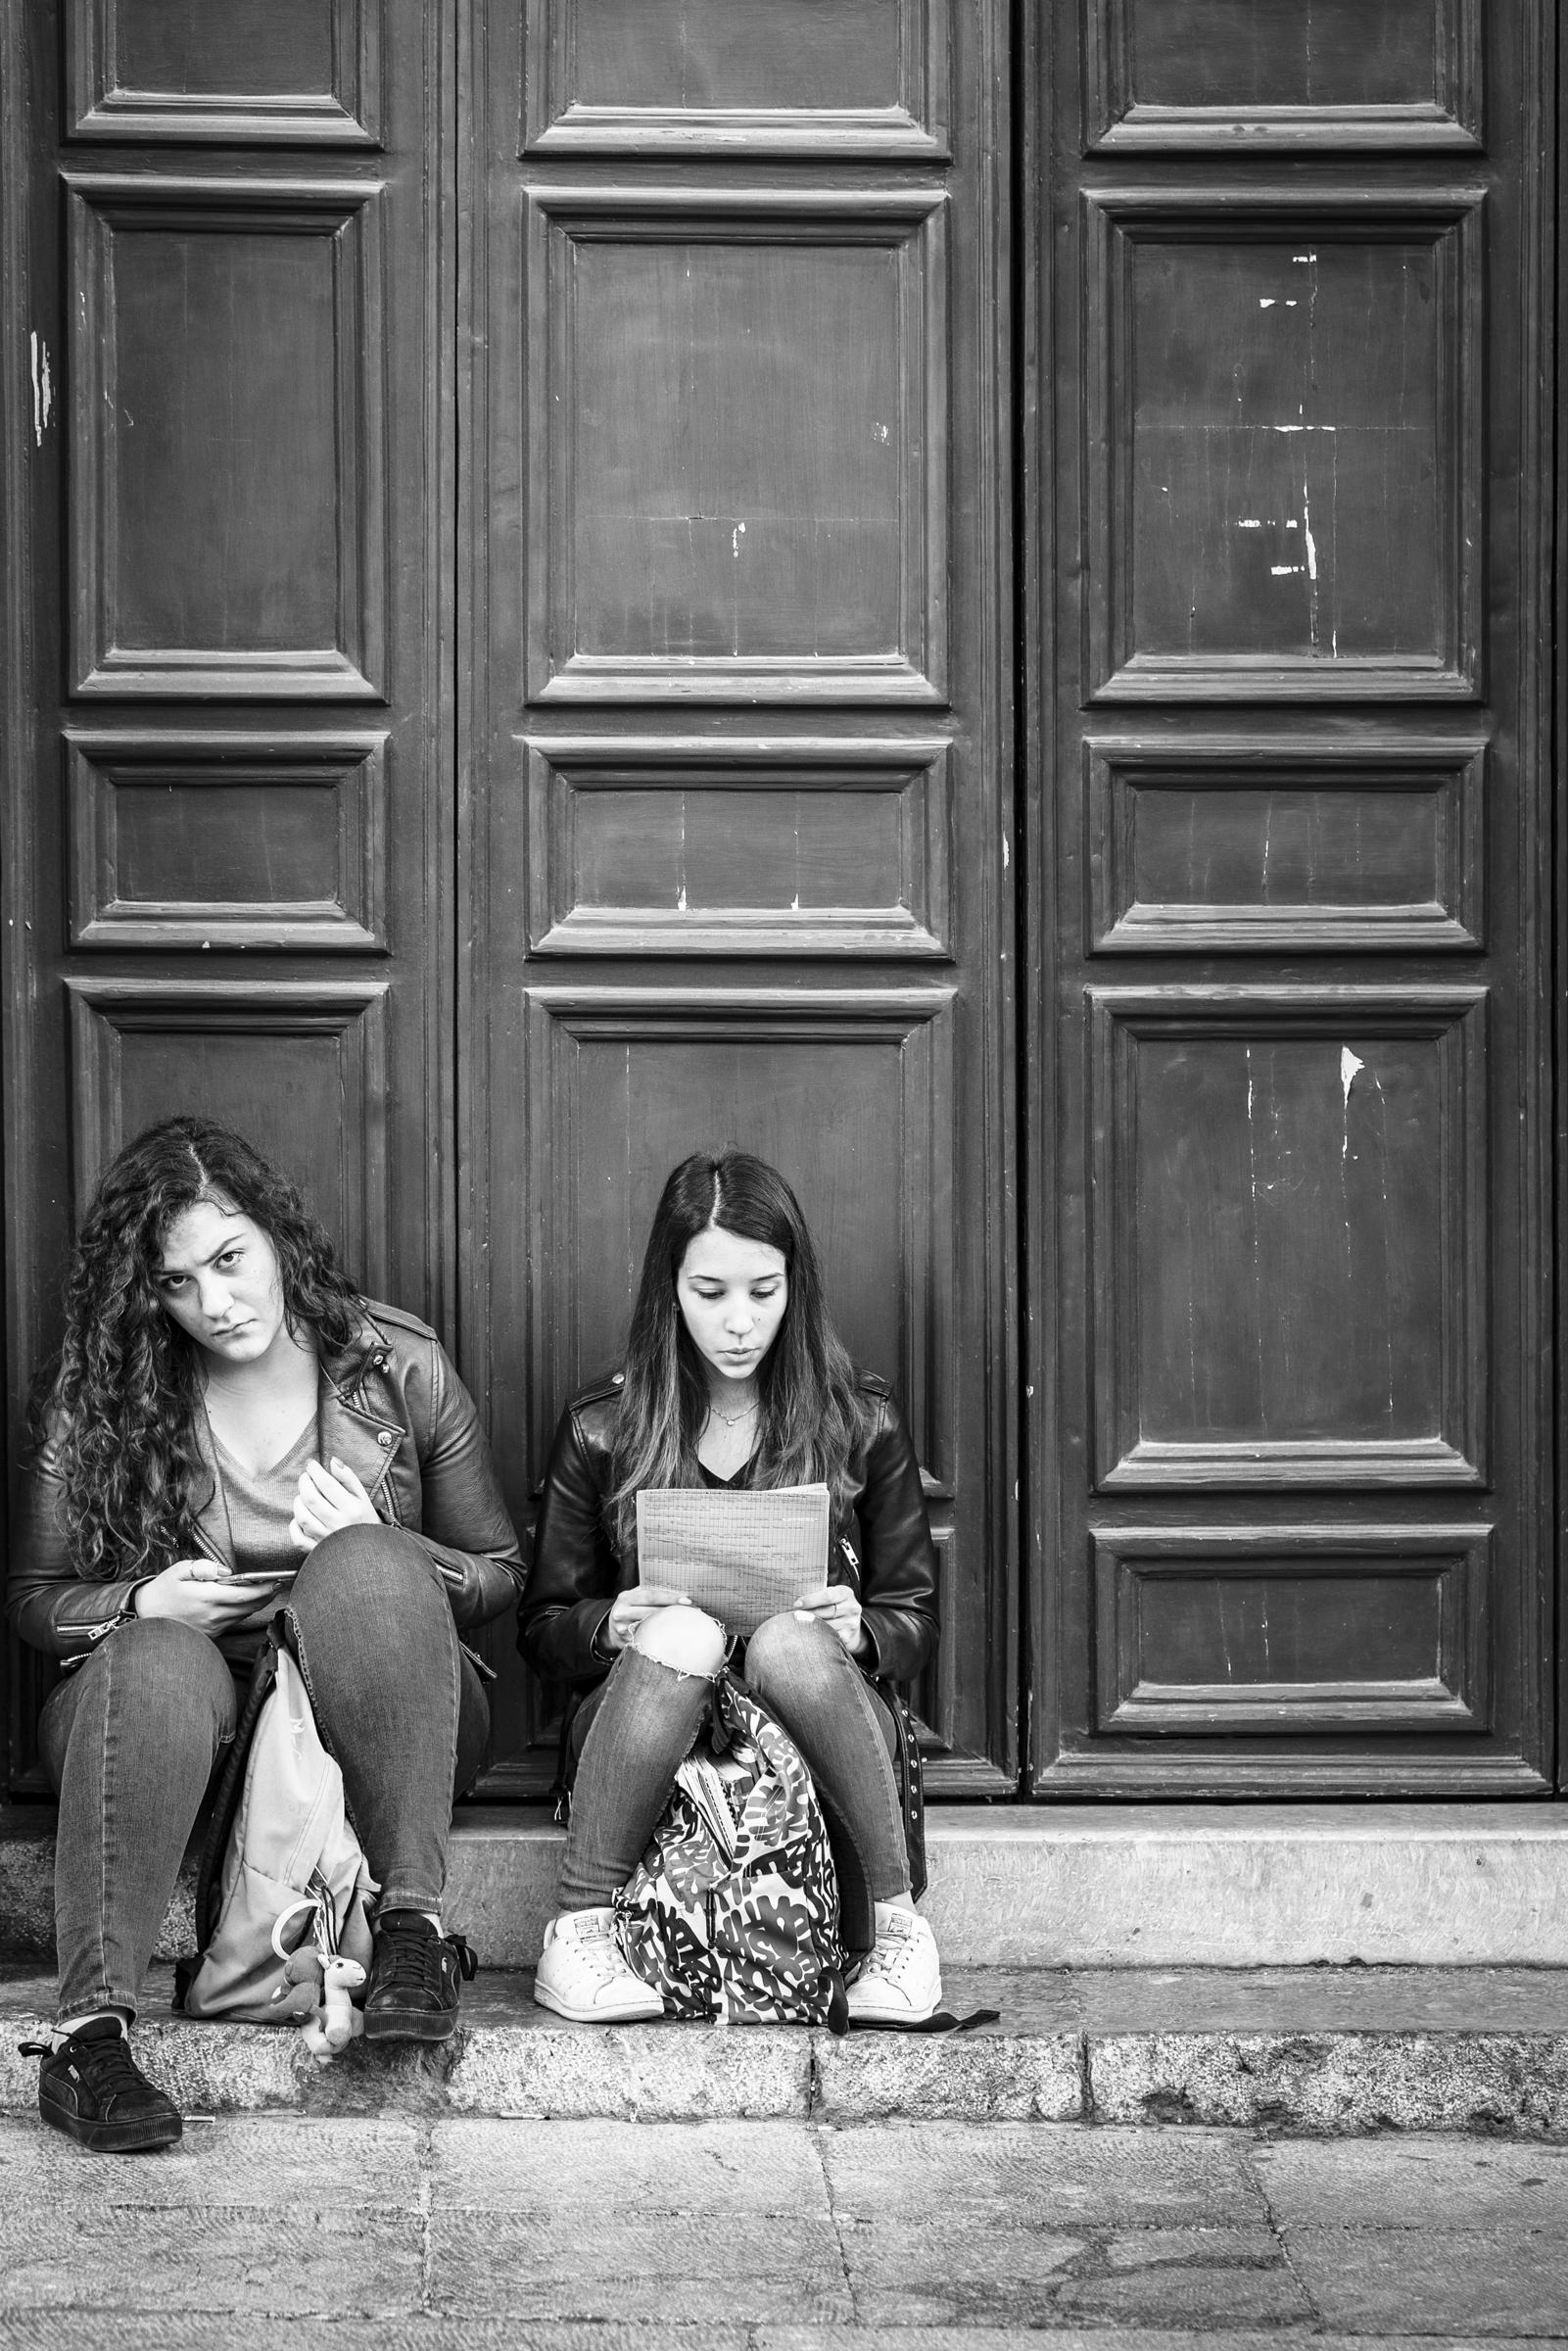 Students, Palermo